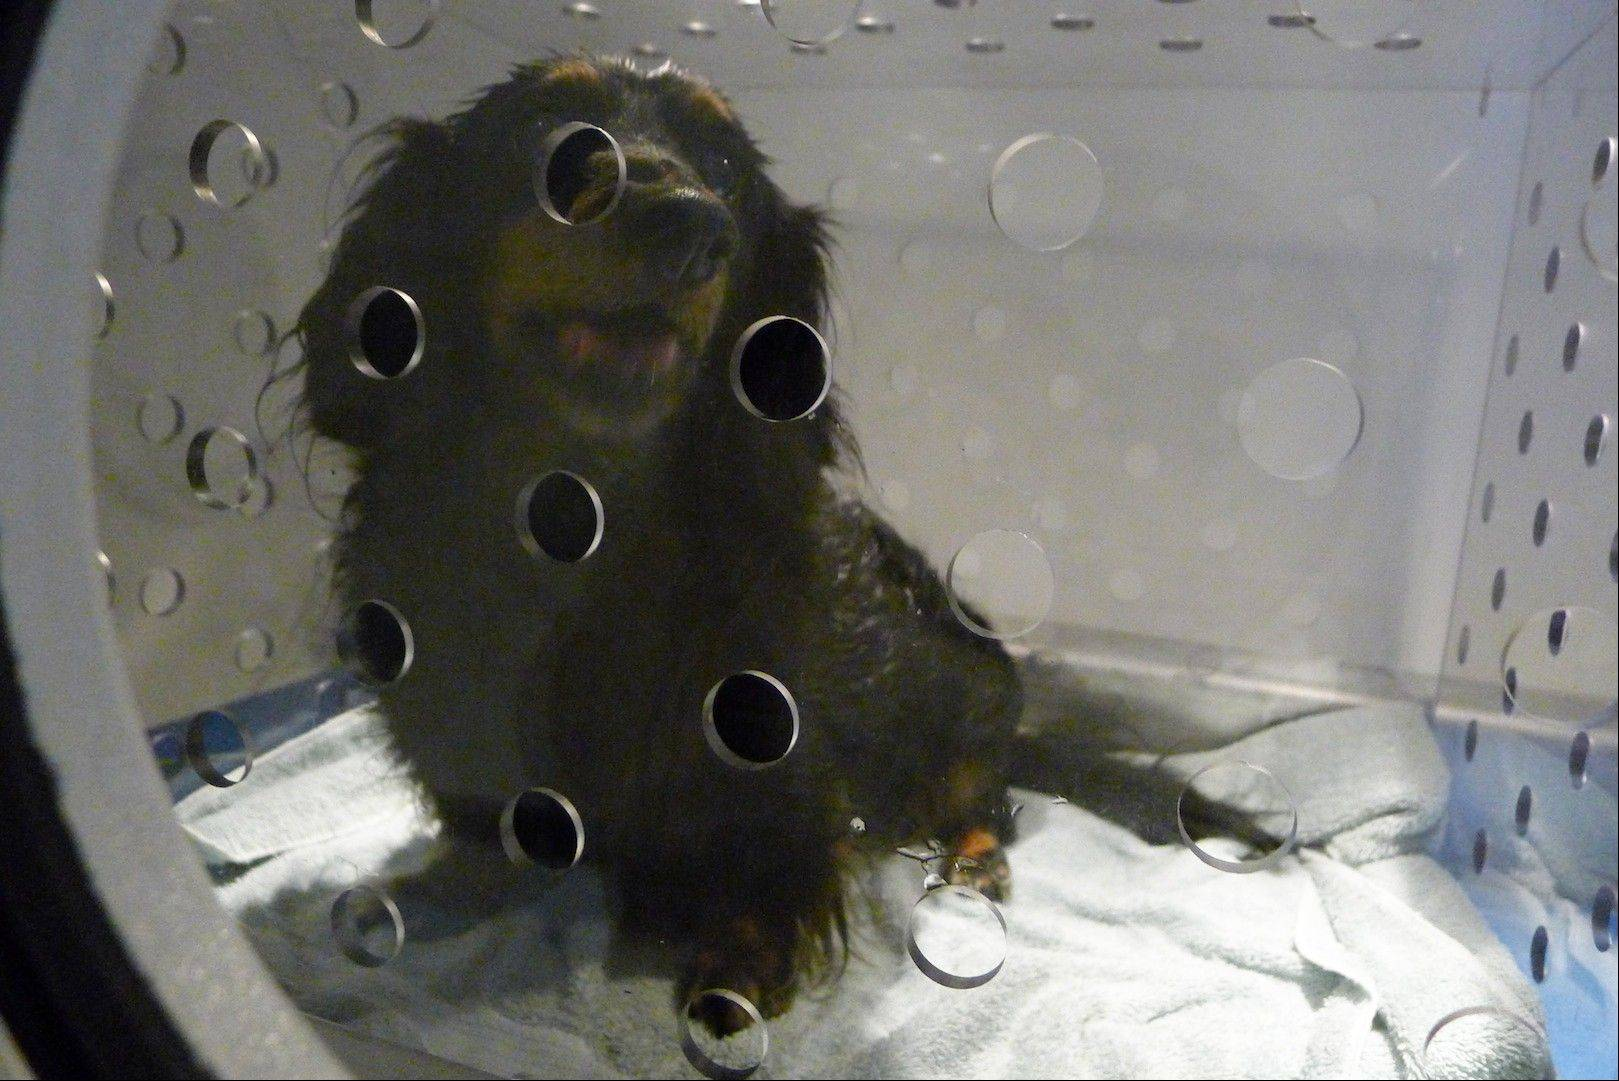 A dachshund named Maggie awaits treatment in the hyperbaric chamber at the University of Florida's College of Veterinary Medicine, in Gainesville, Fla.